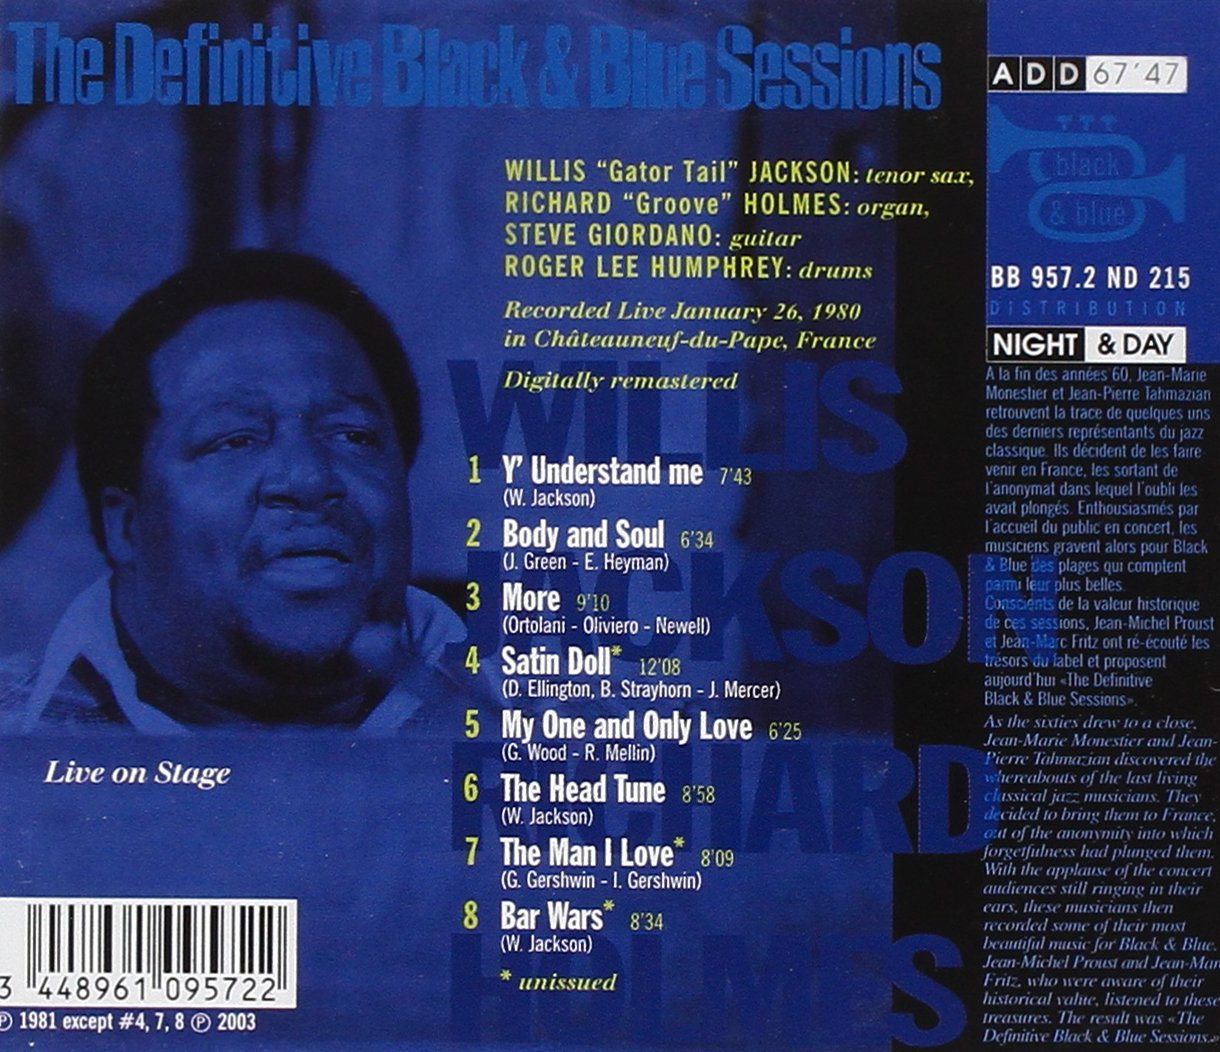 Definitive Black & Blue Sessions by Black & Blue France